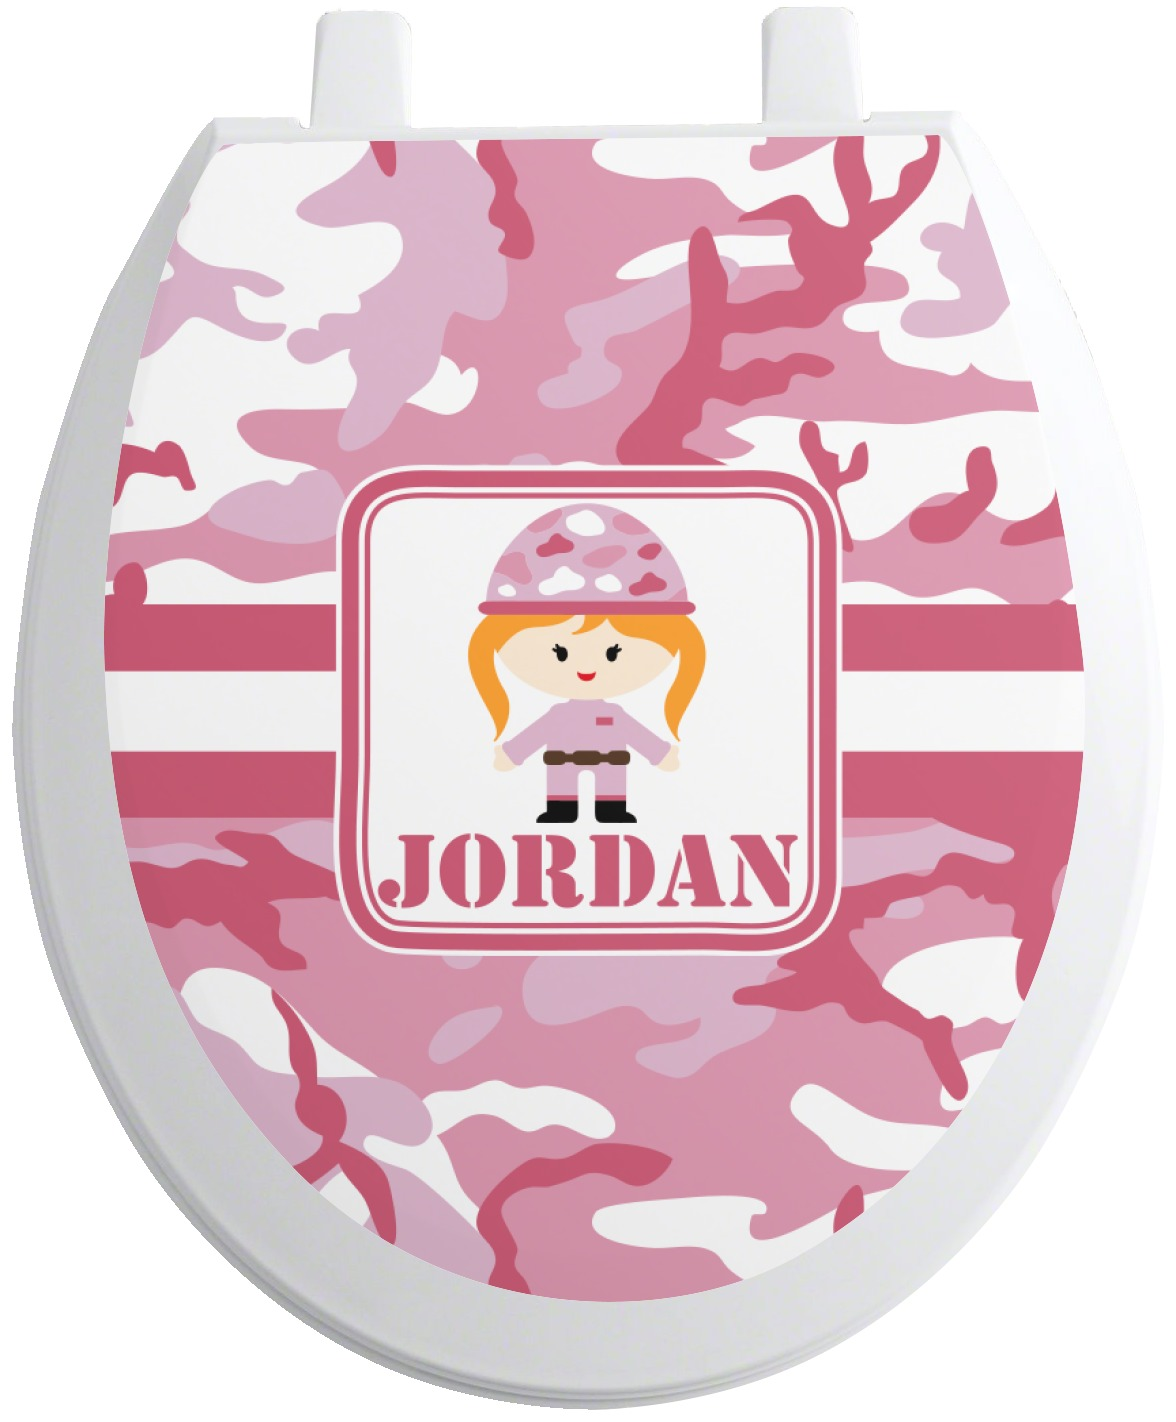 pink camo toilet seat decal round personalized. Black Bedroom Furniture Sets. Home Design Ideas